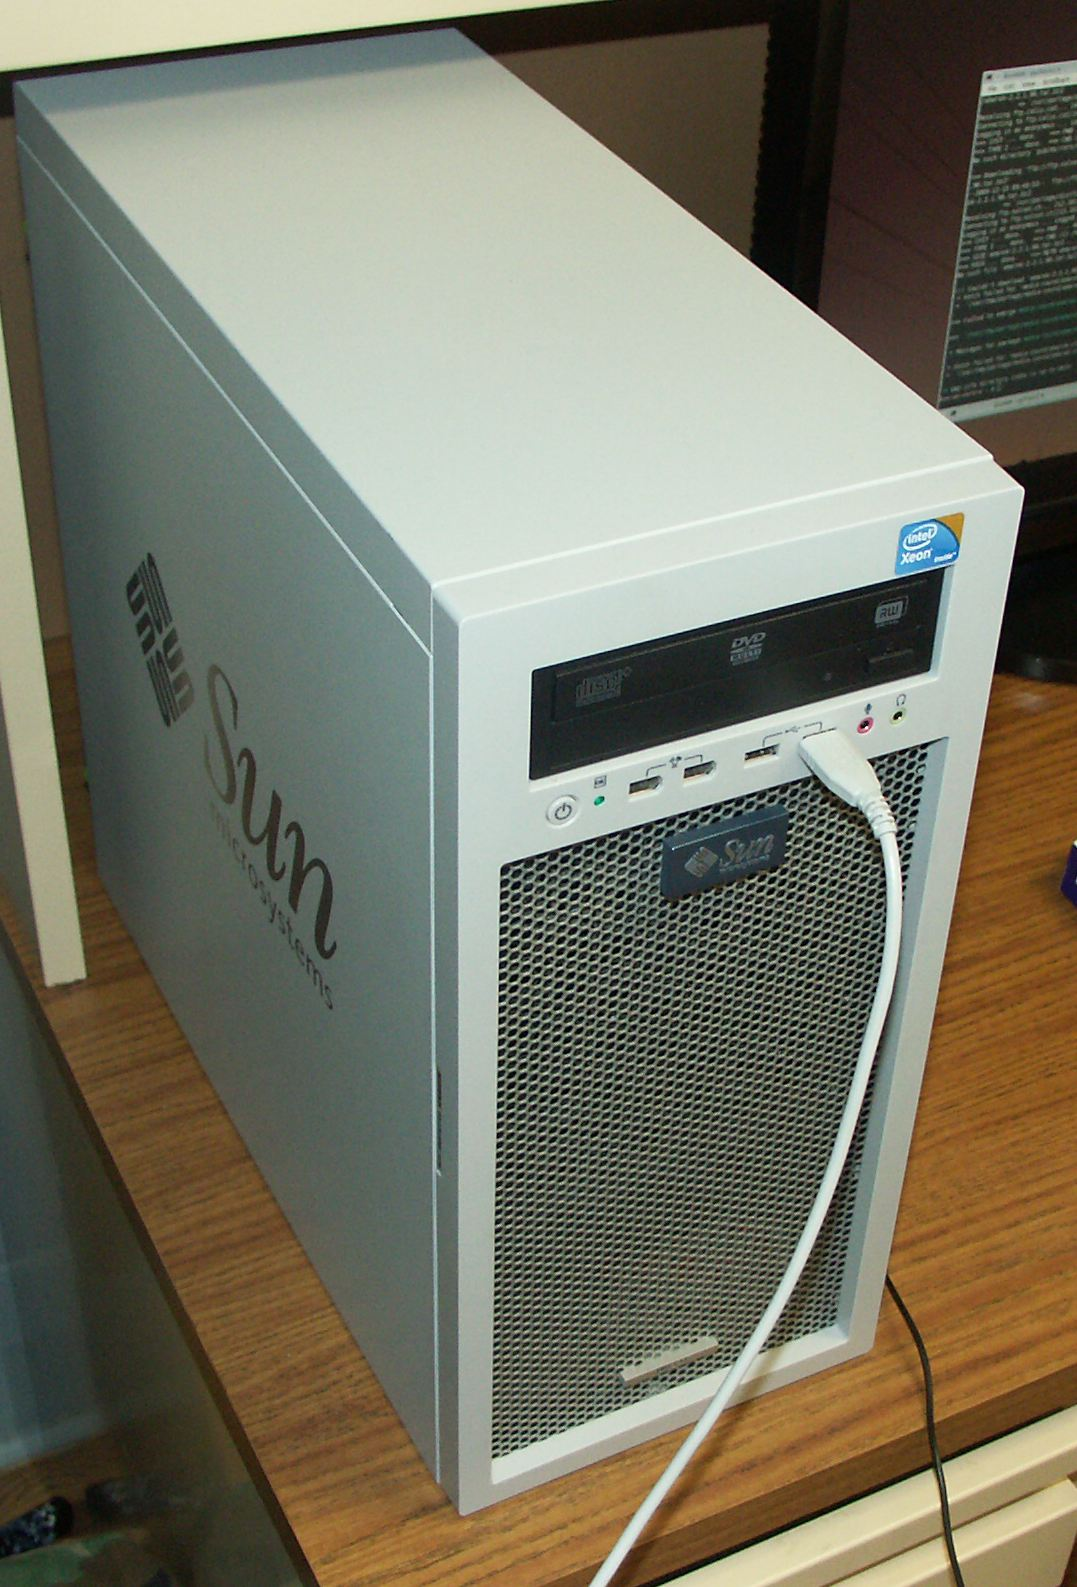 Sun ultra 27 review the ultimate linux workstation - Ultimate cad workstation ...